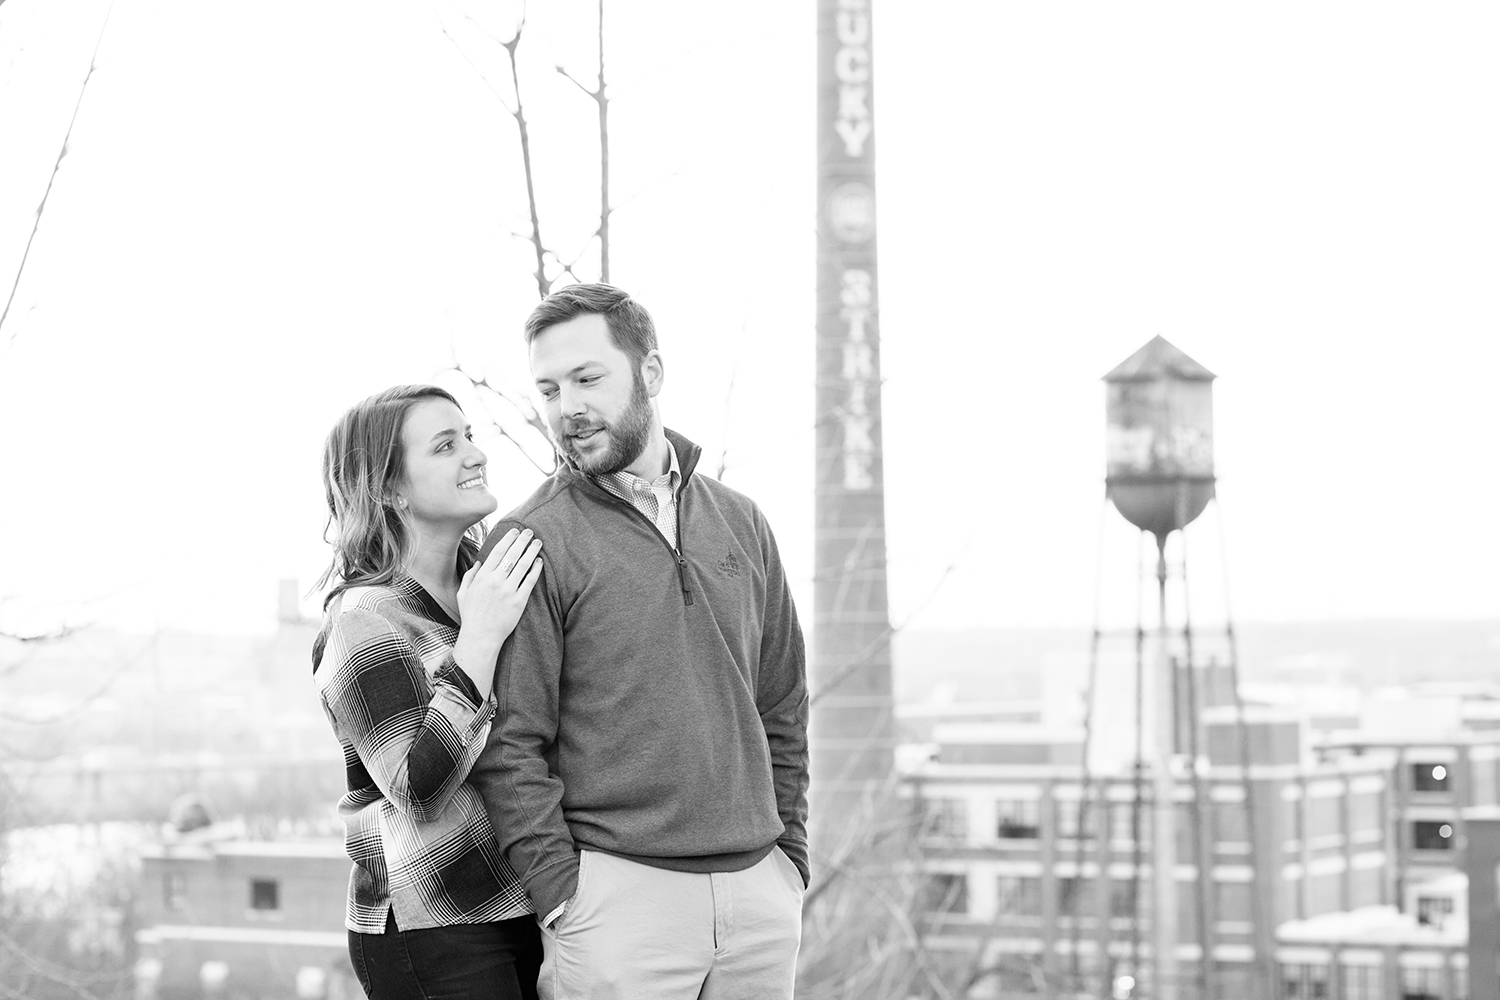 Sarah  Clarks Very Richmond Engagement Session - Image Property of www.j-dphoto.com